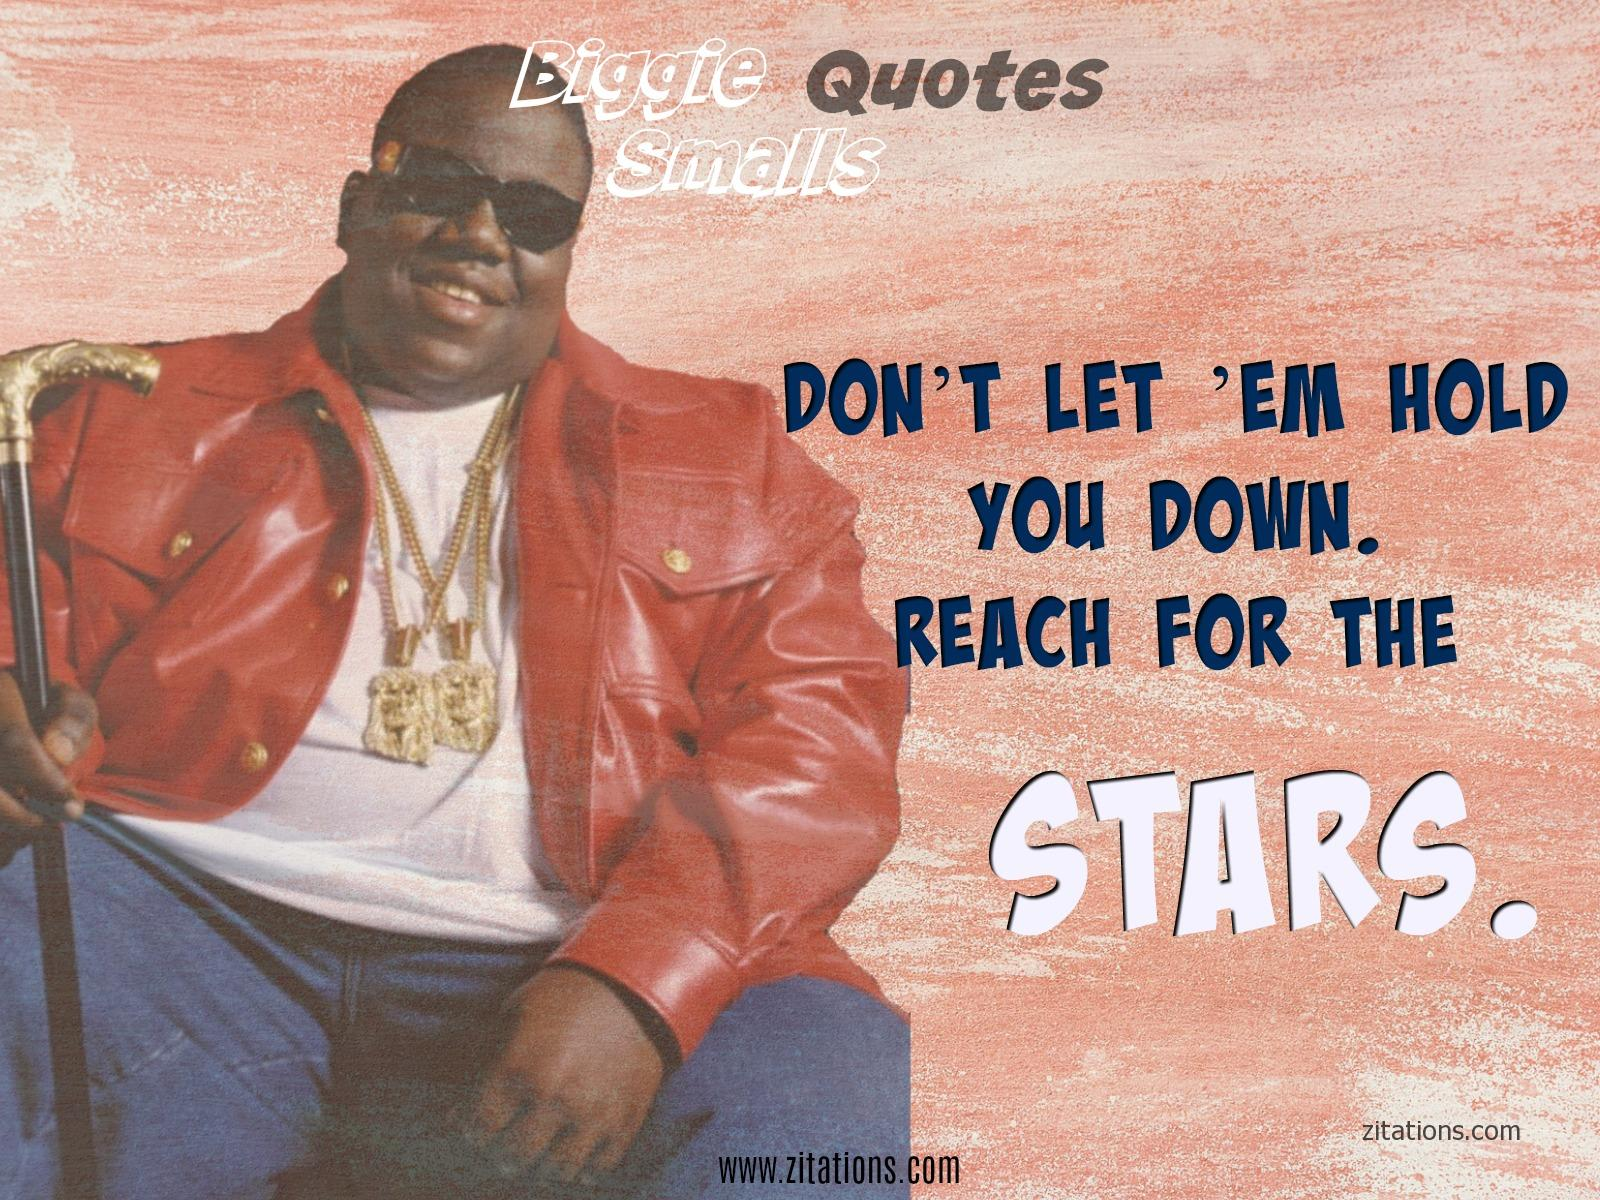 Inspirational Biggie Smalls Quotes